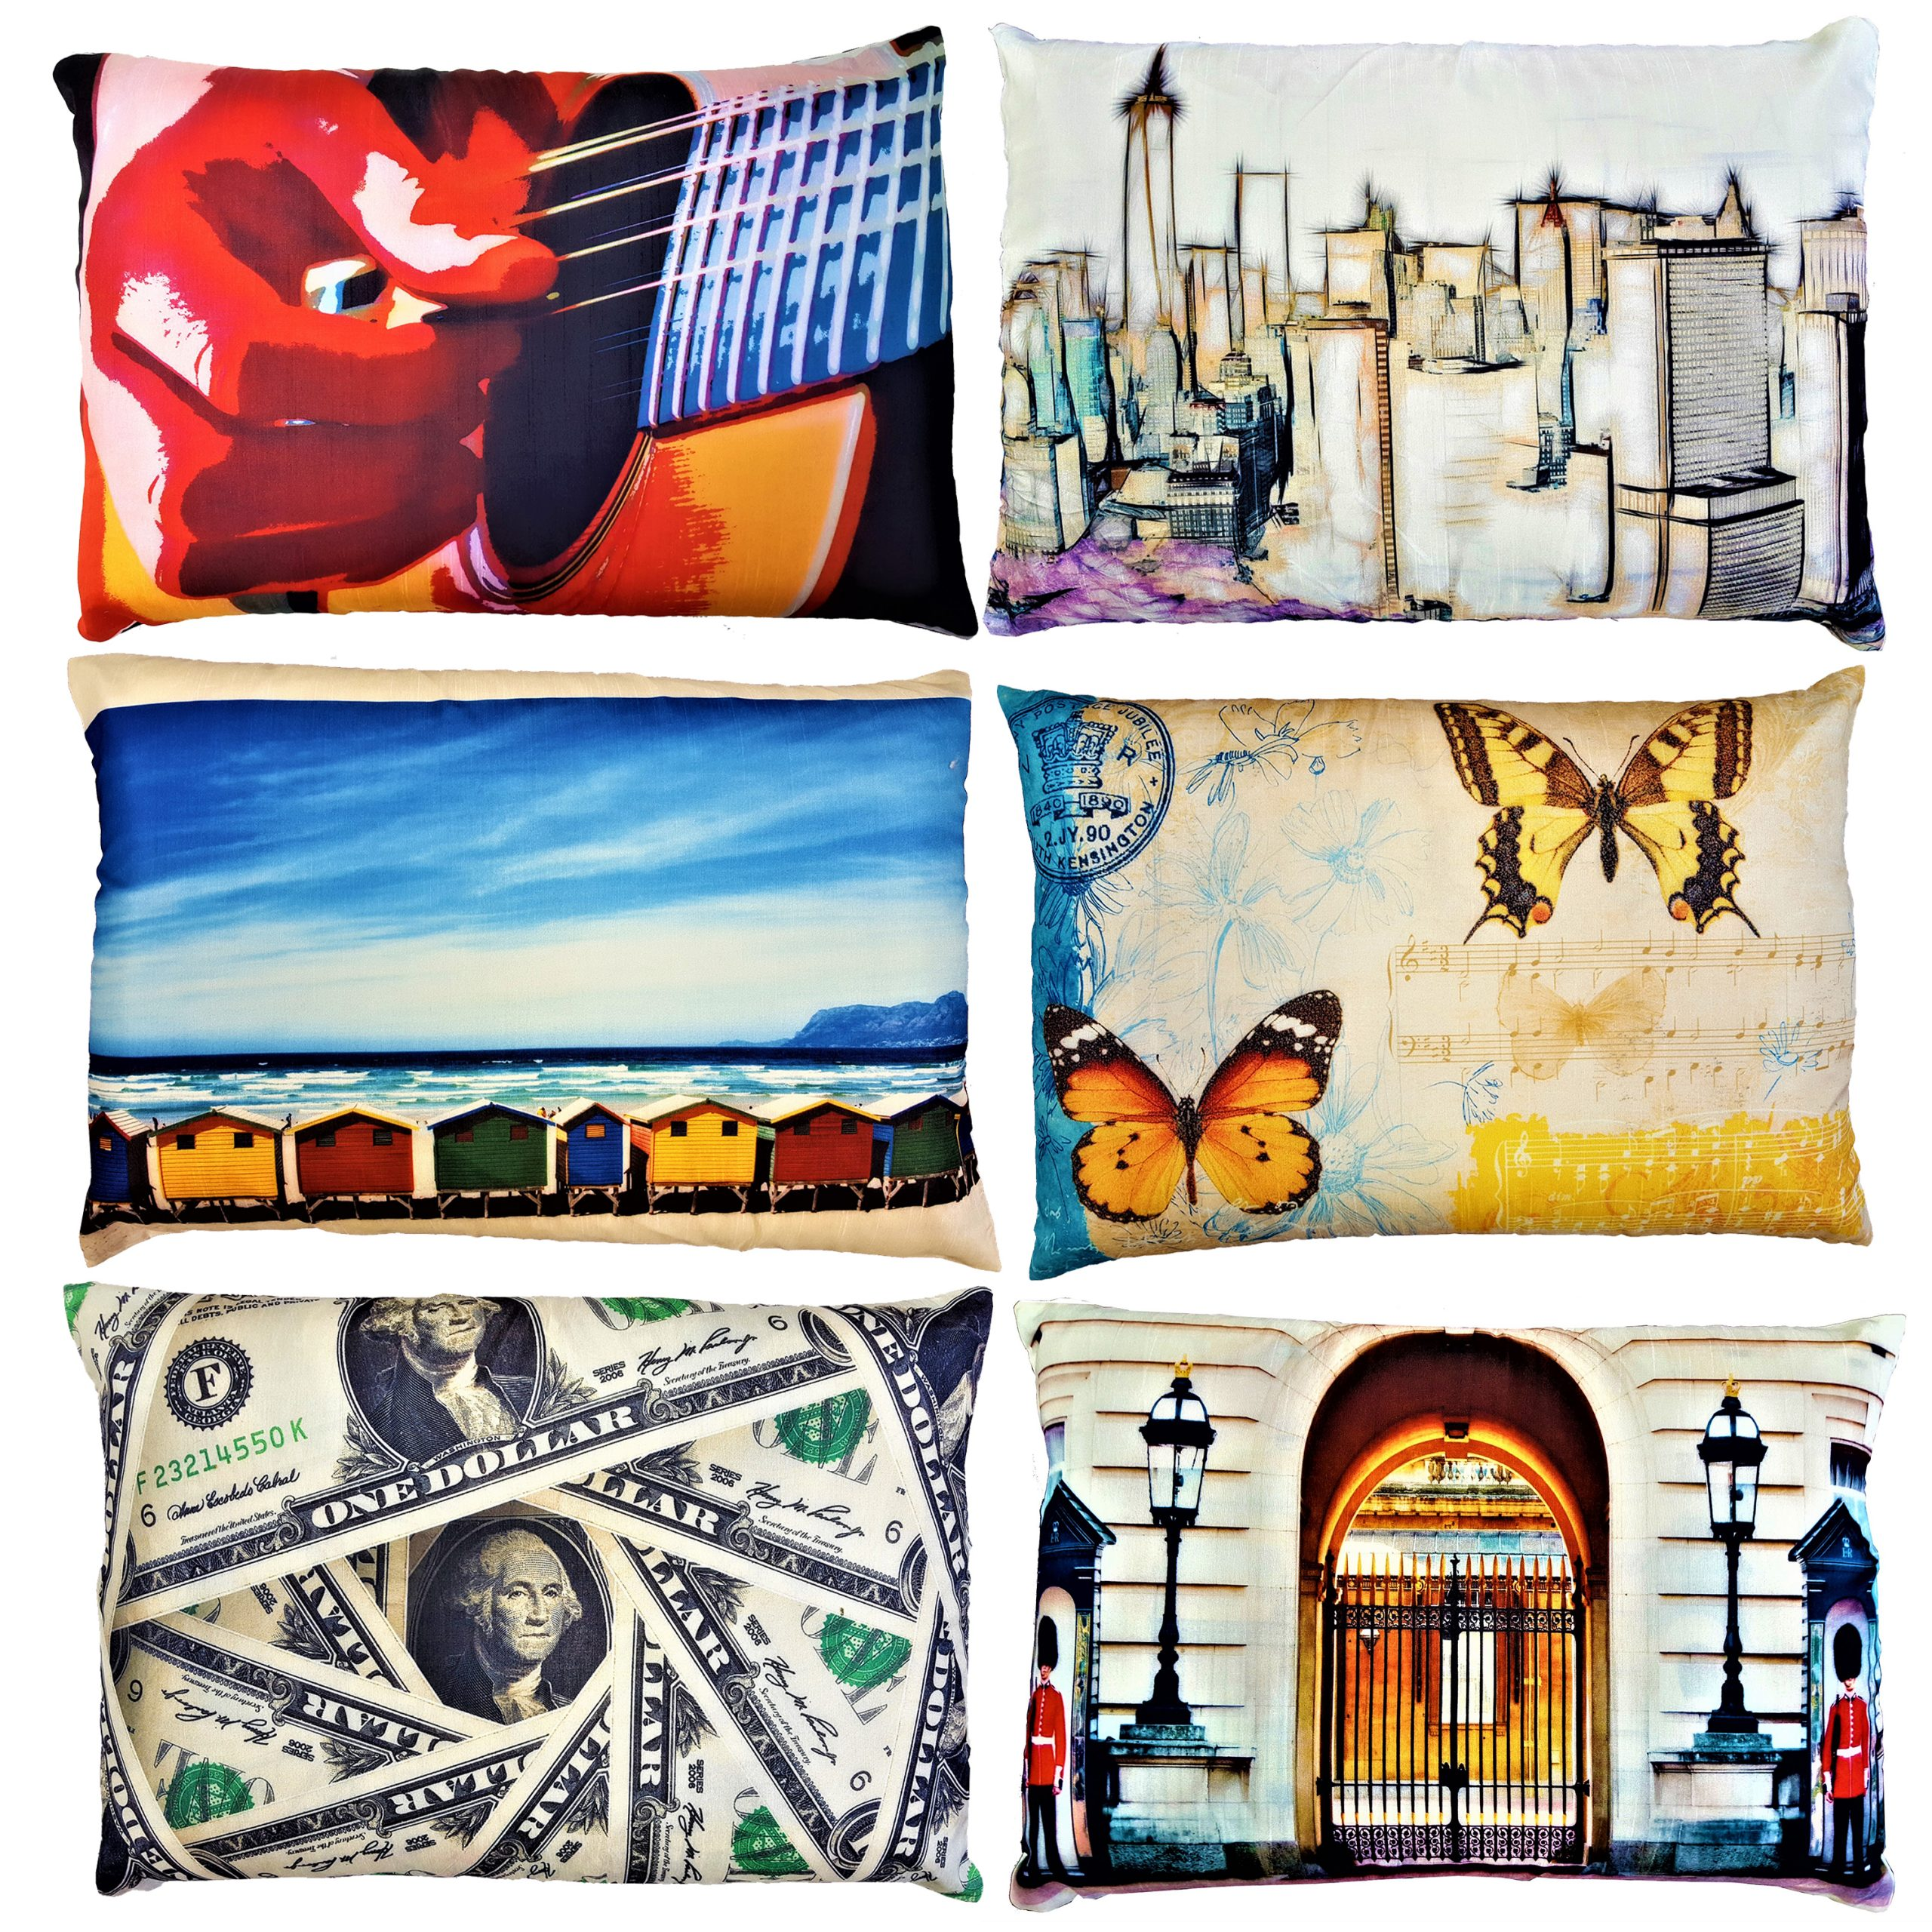 About Home Faux Silk printed Pillowcases with Padded foam